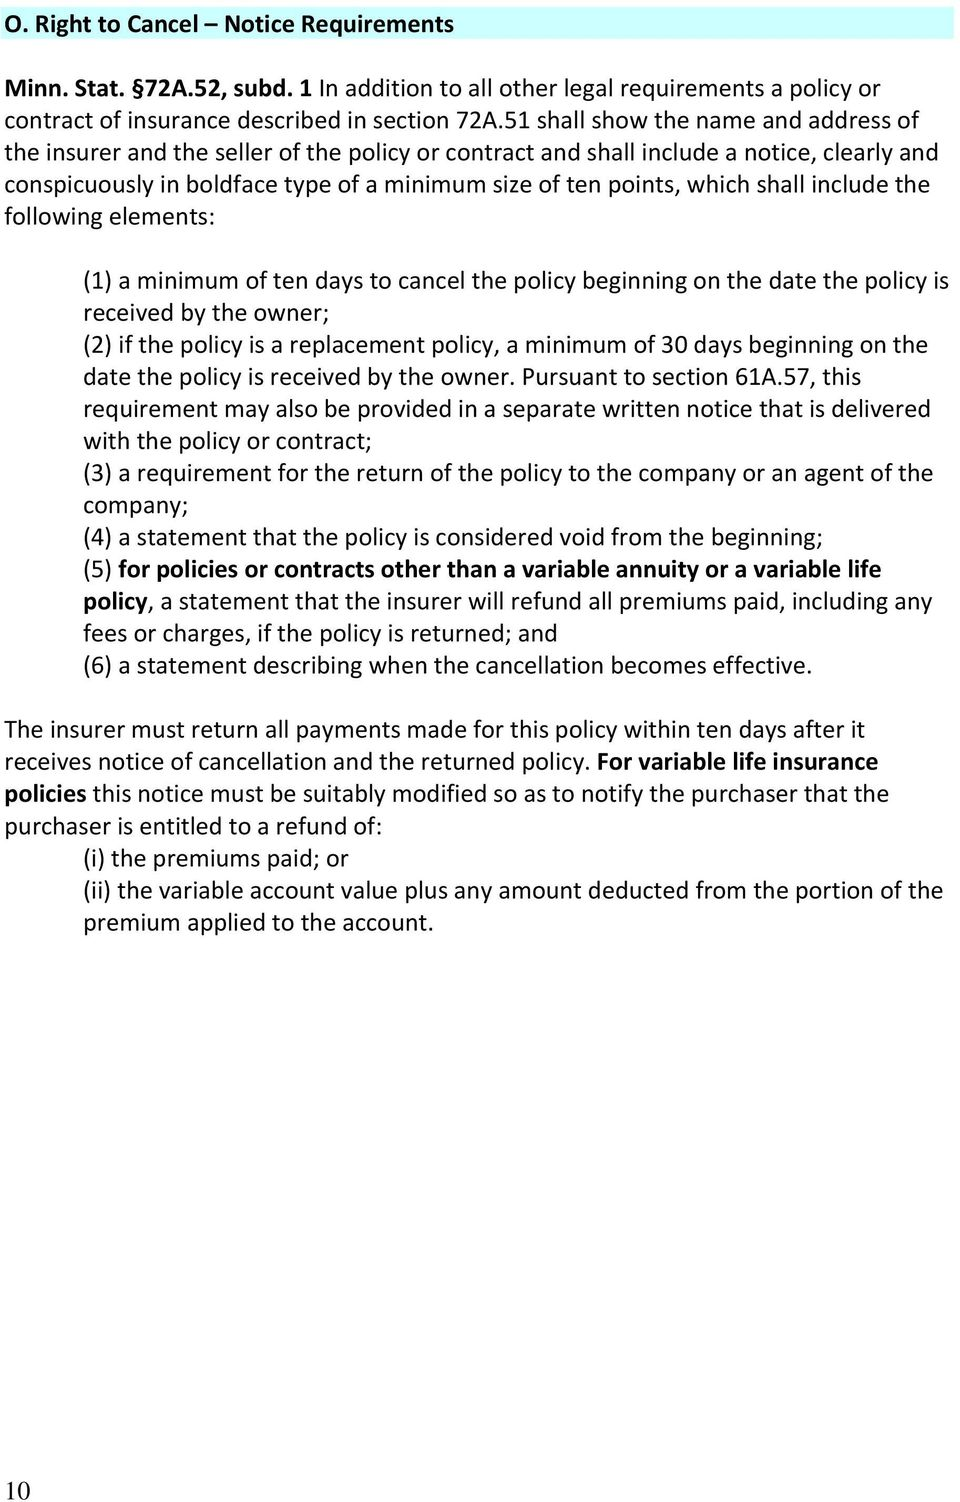 which shall include the following elements: (1) a minimum of ten days to cancel the policy beginning on the date the policy is received by the owner; (2) if the policy is a replacement policy, a